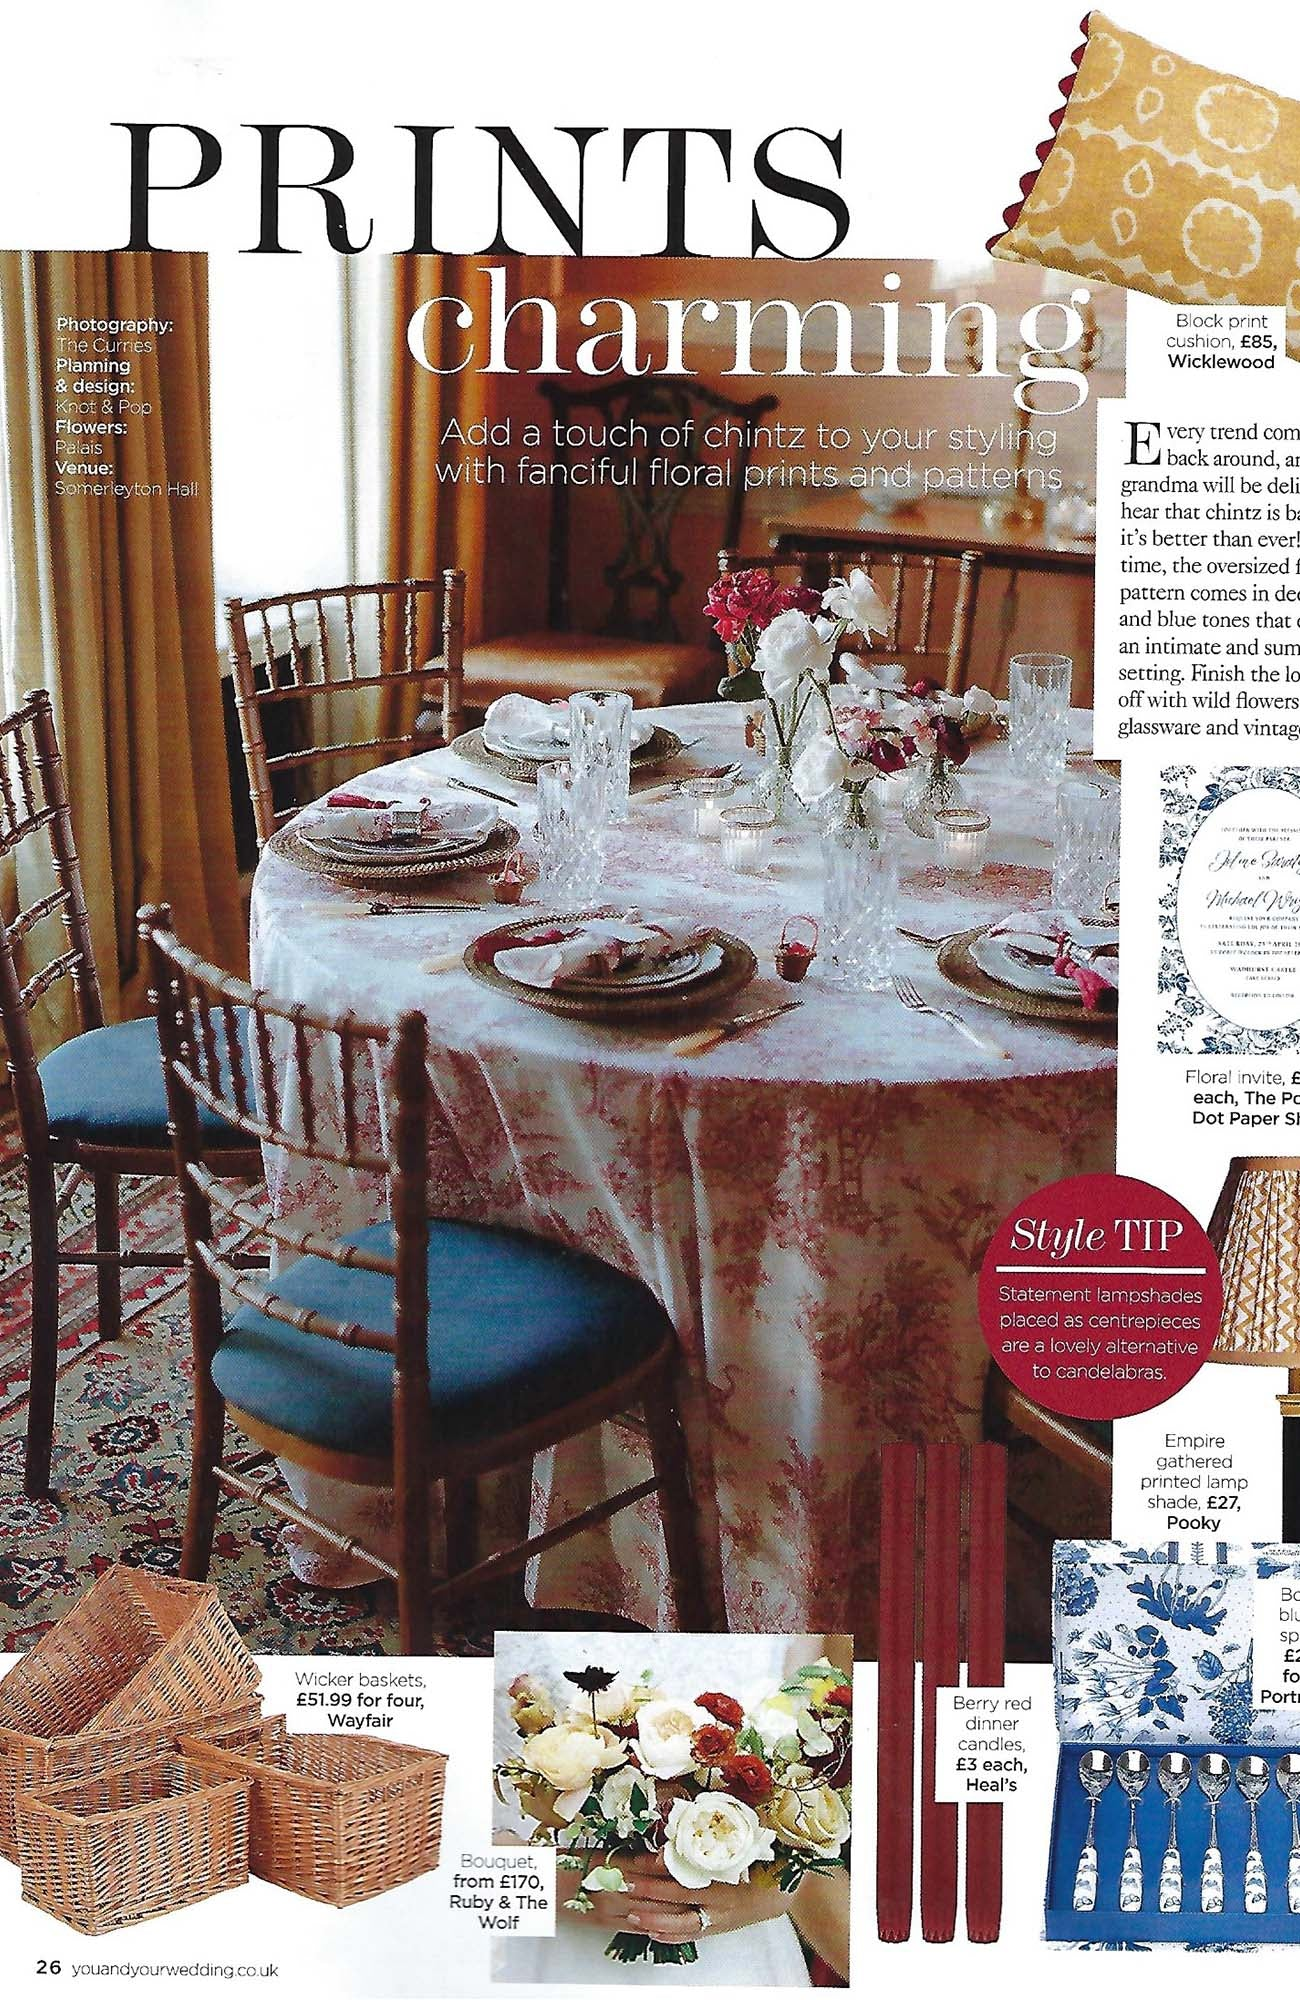 Wicklewood osborne cushion featured in You and Your Wedding Magazine